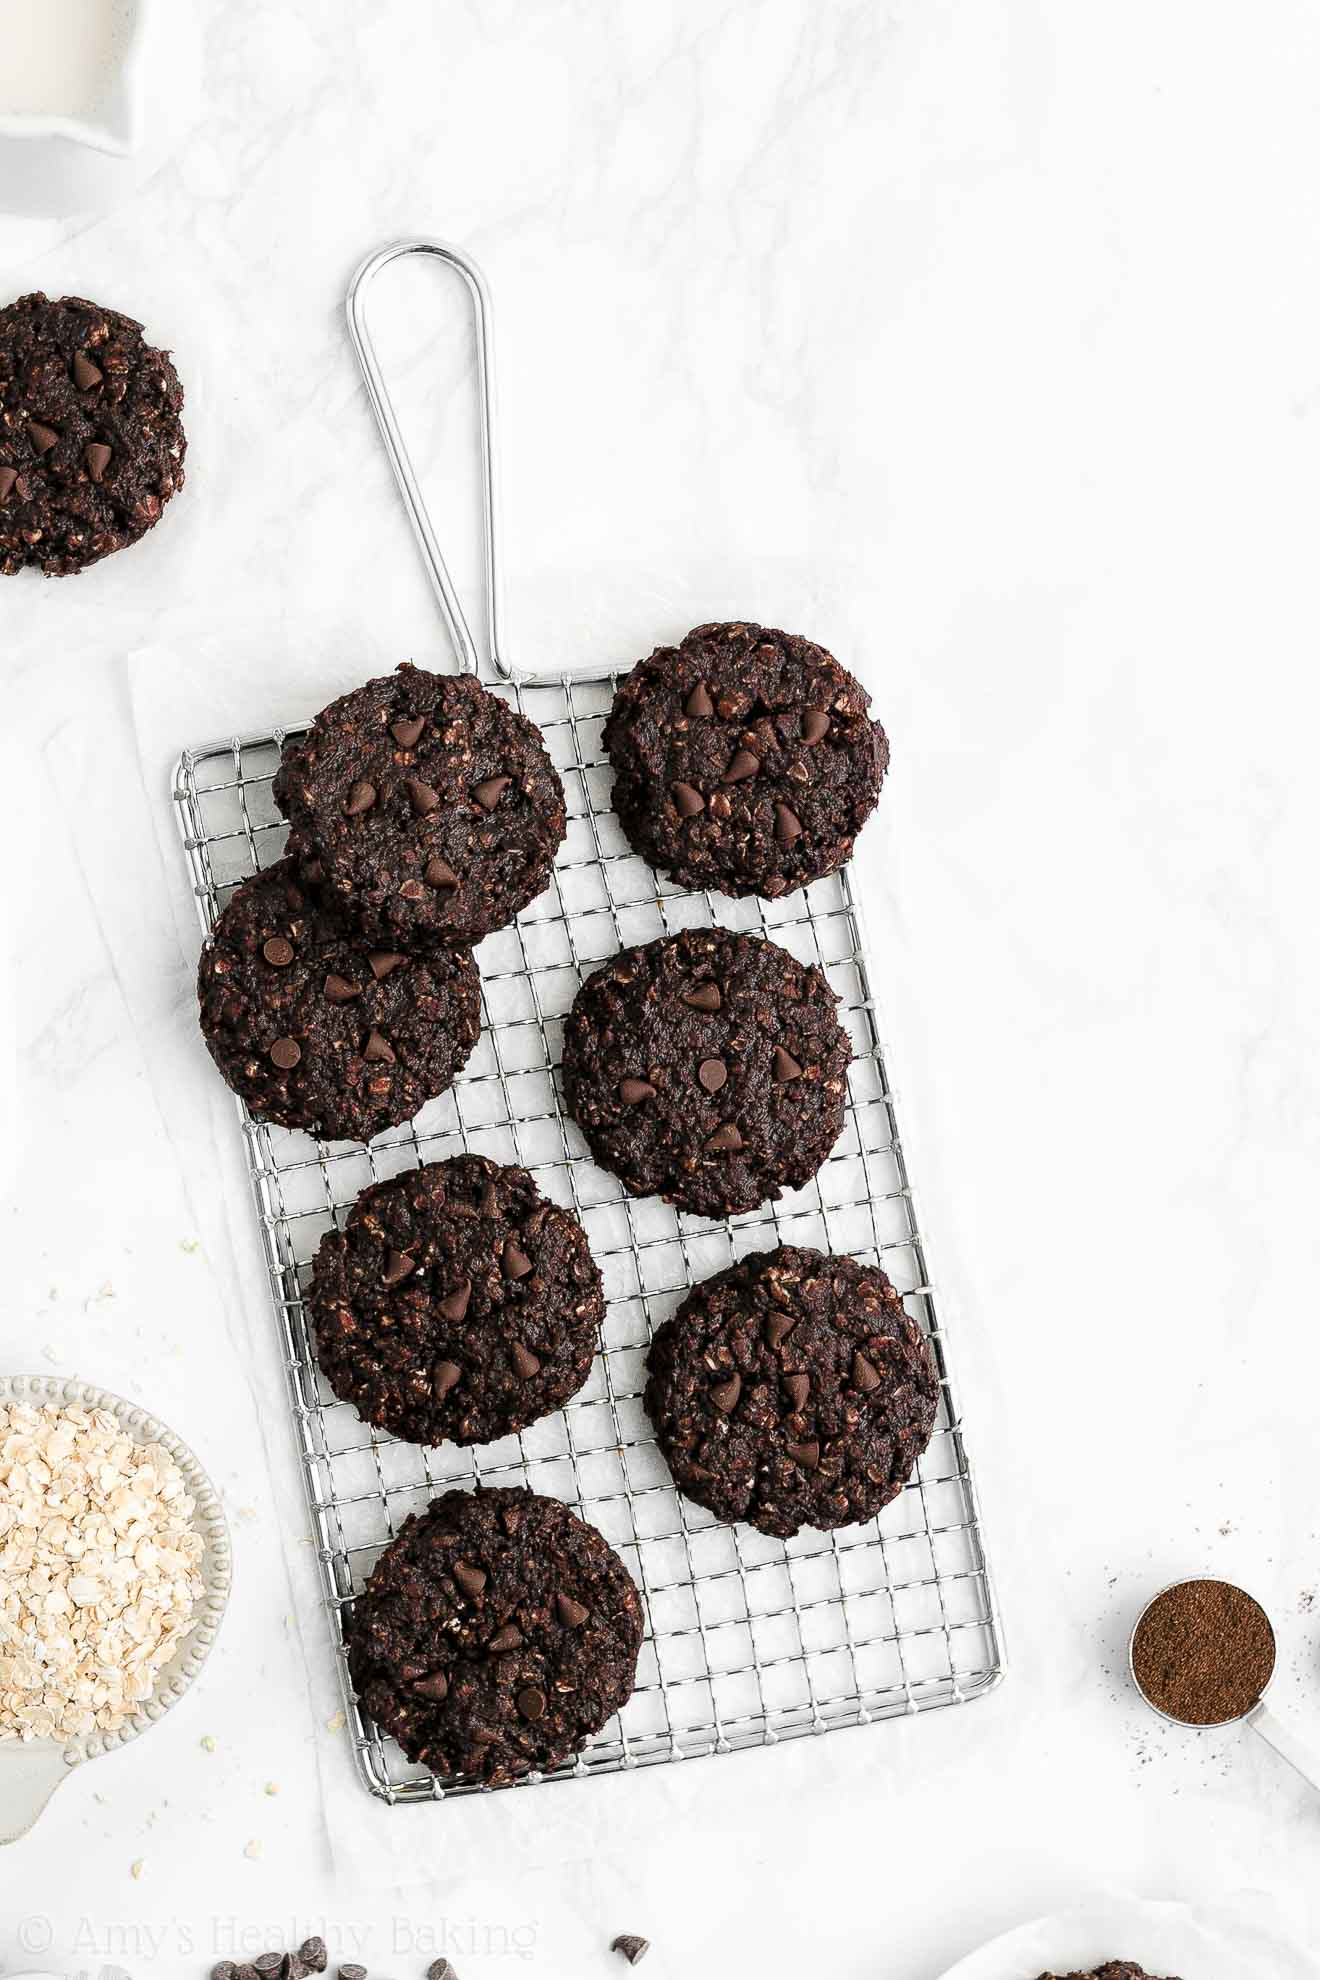 Healthy Low Calorie Vegan Flourless Eggless Double Chocolate Oatmeal Cookies